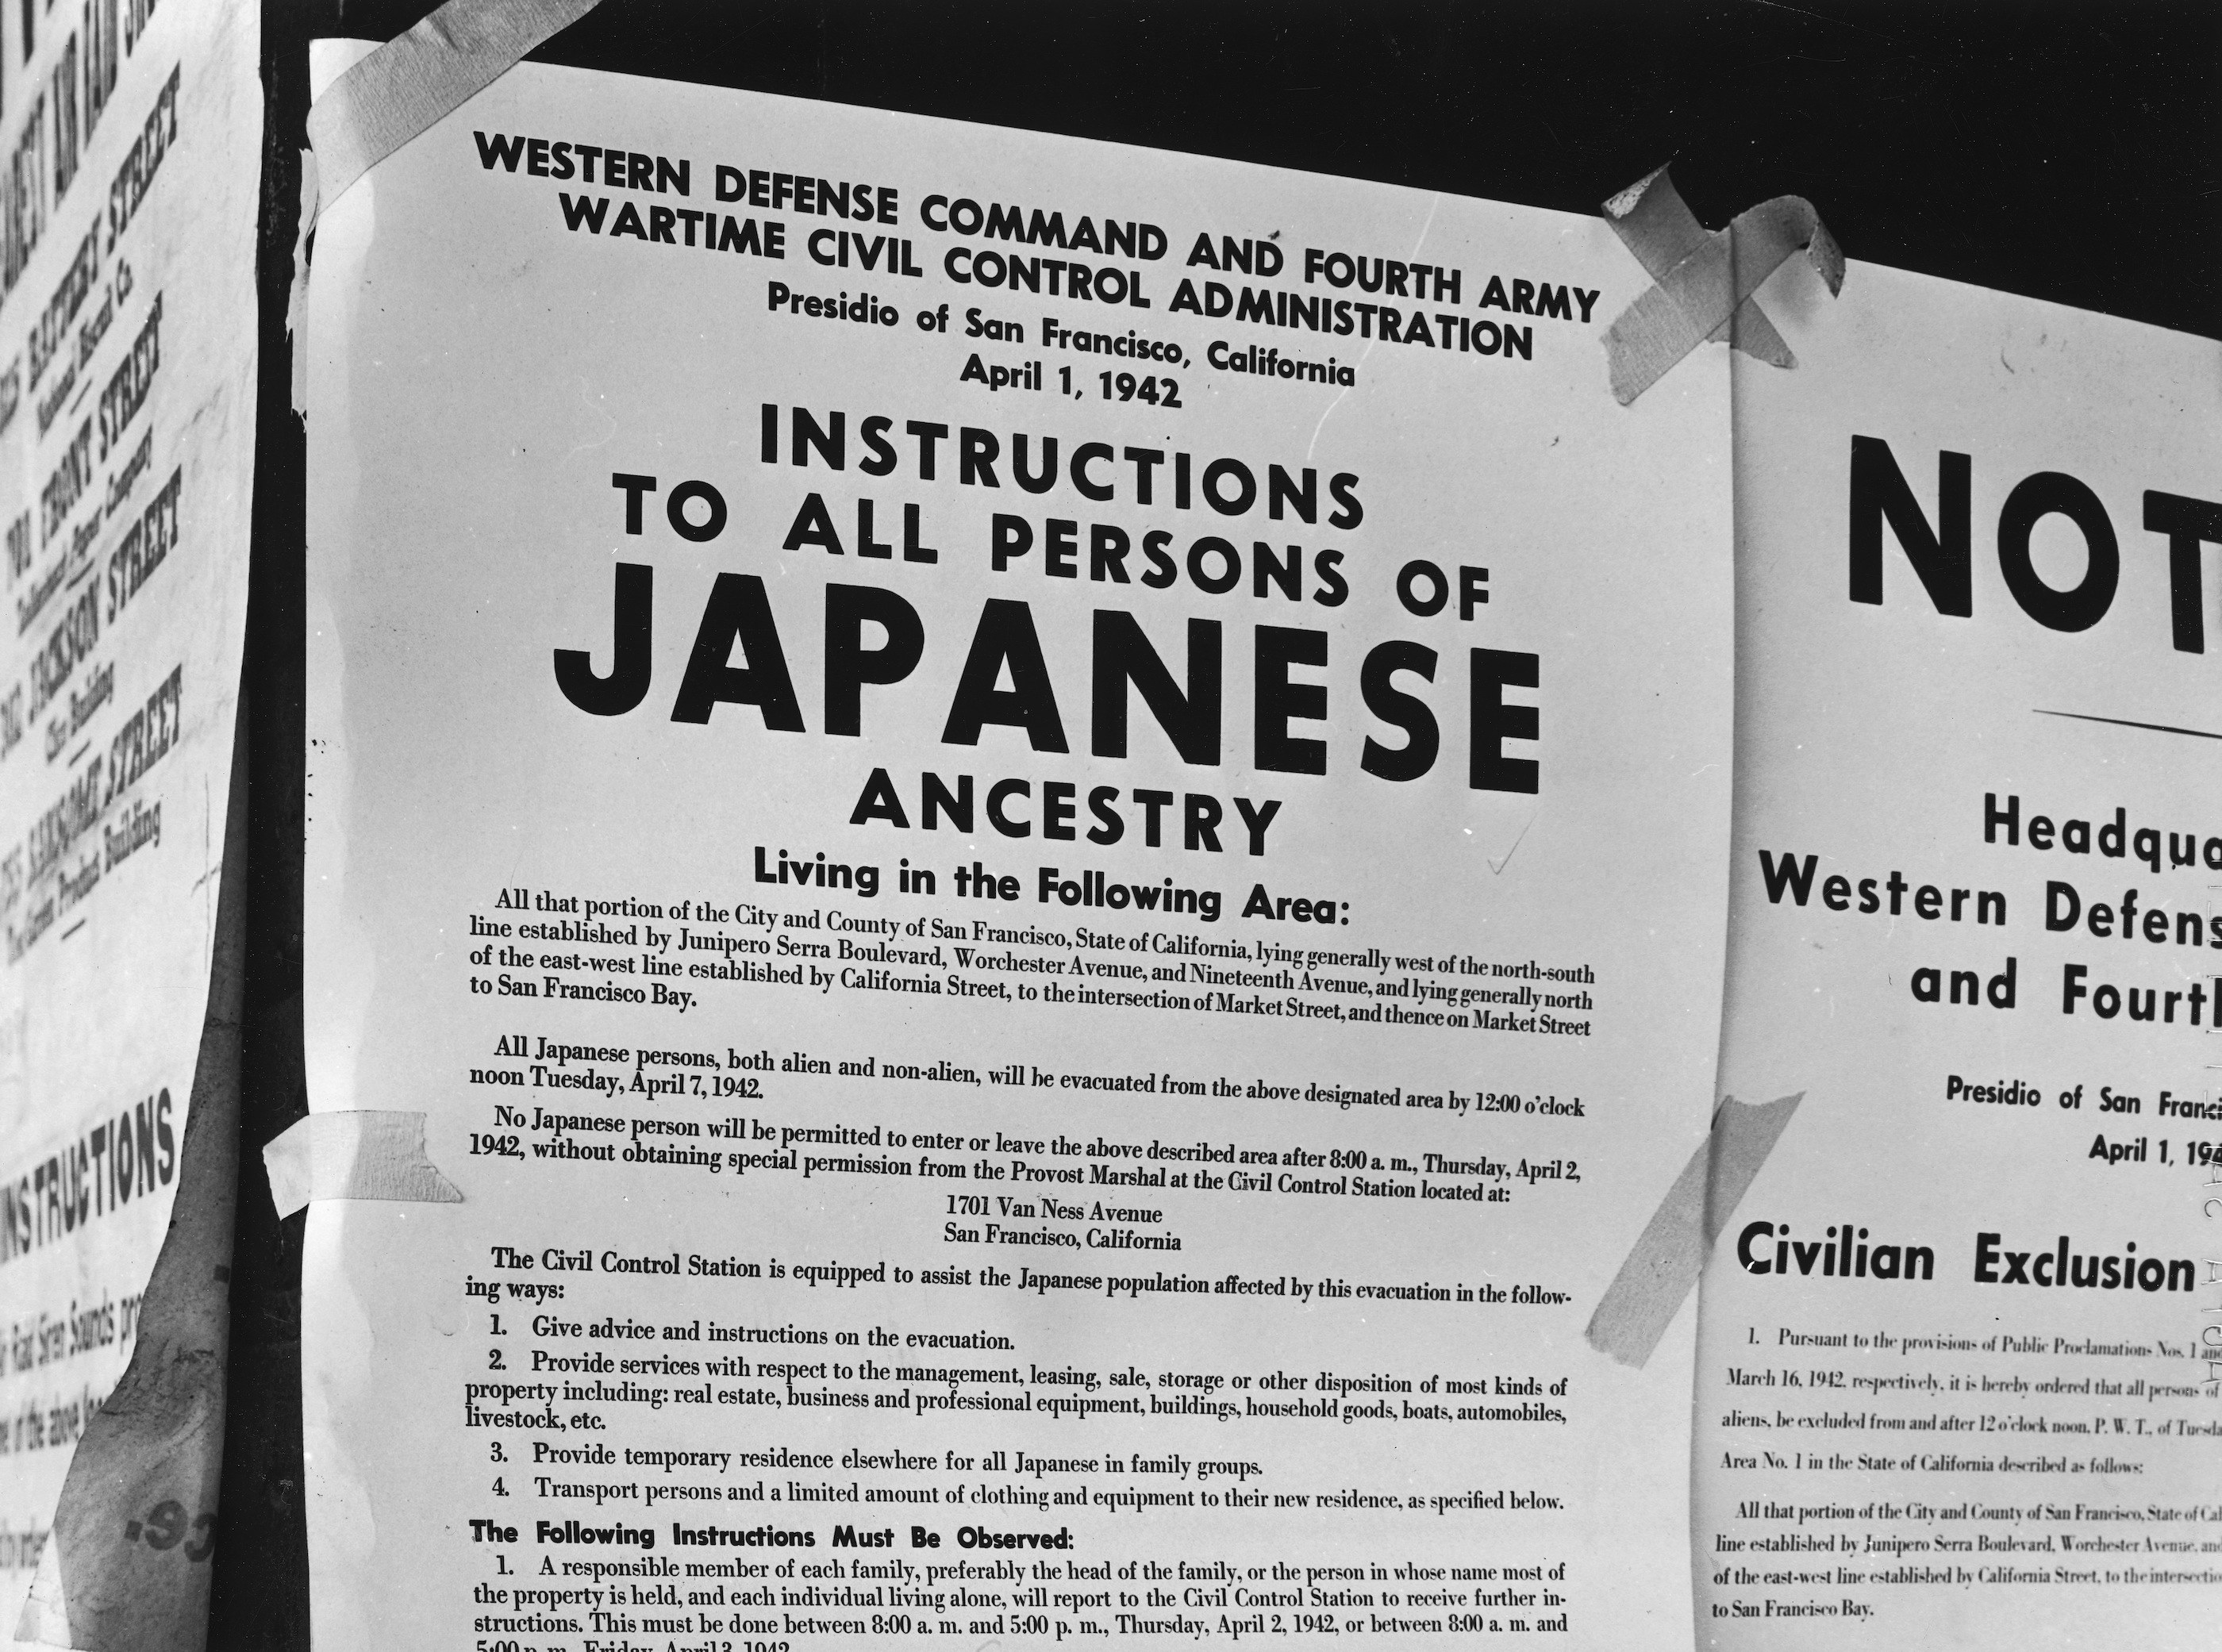 """A flyer taped to a building in San Francisco that reads, """"Instructions To All Persons Of Japanese Ancestry,"""" and orders them to be evacuated to internment camps"""